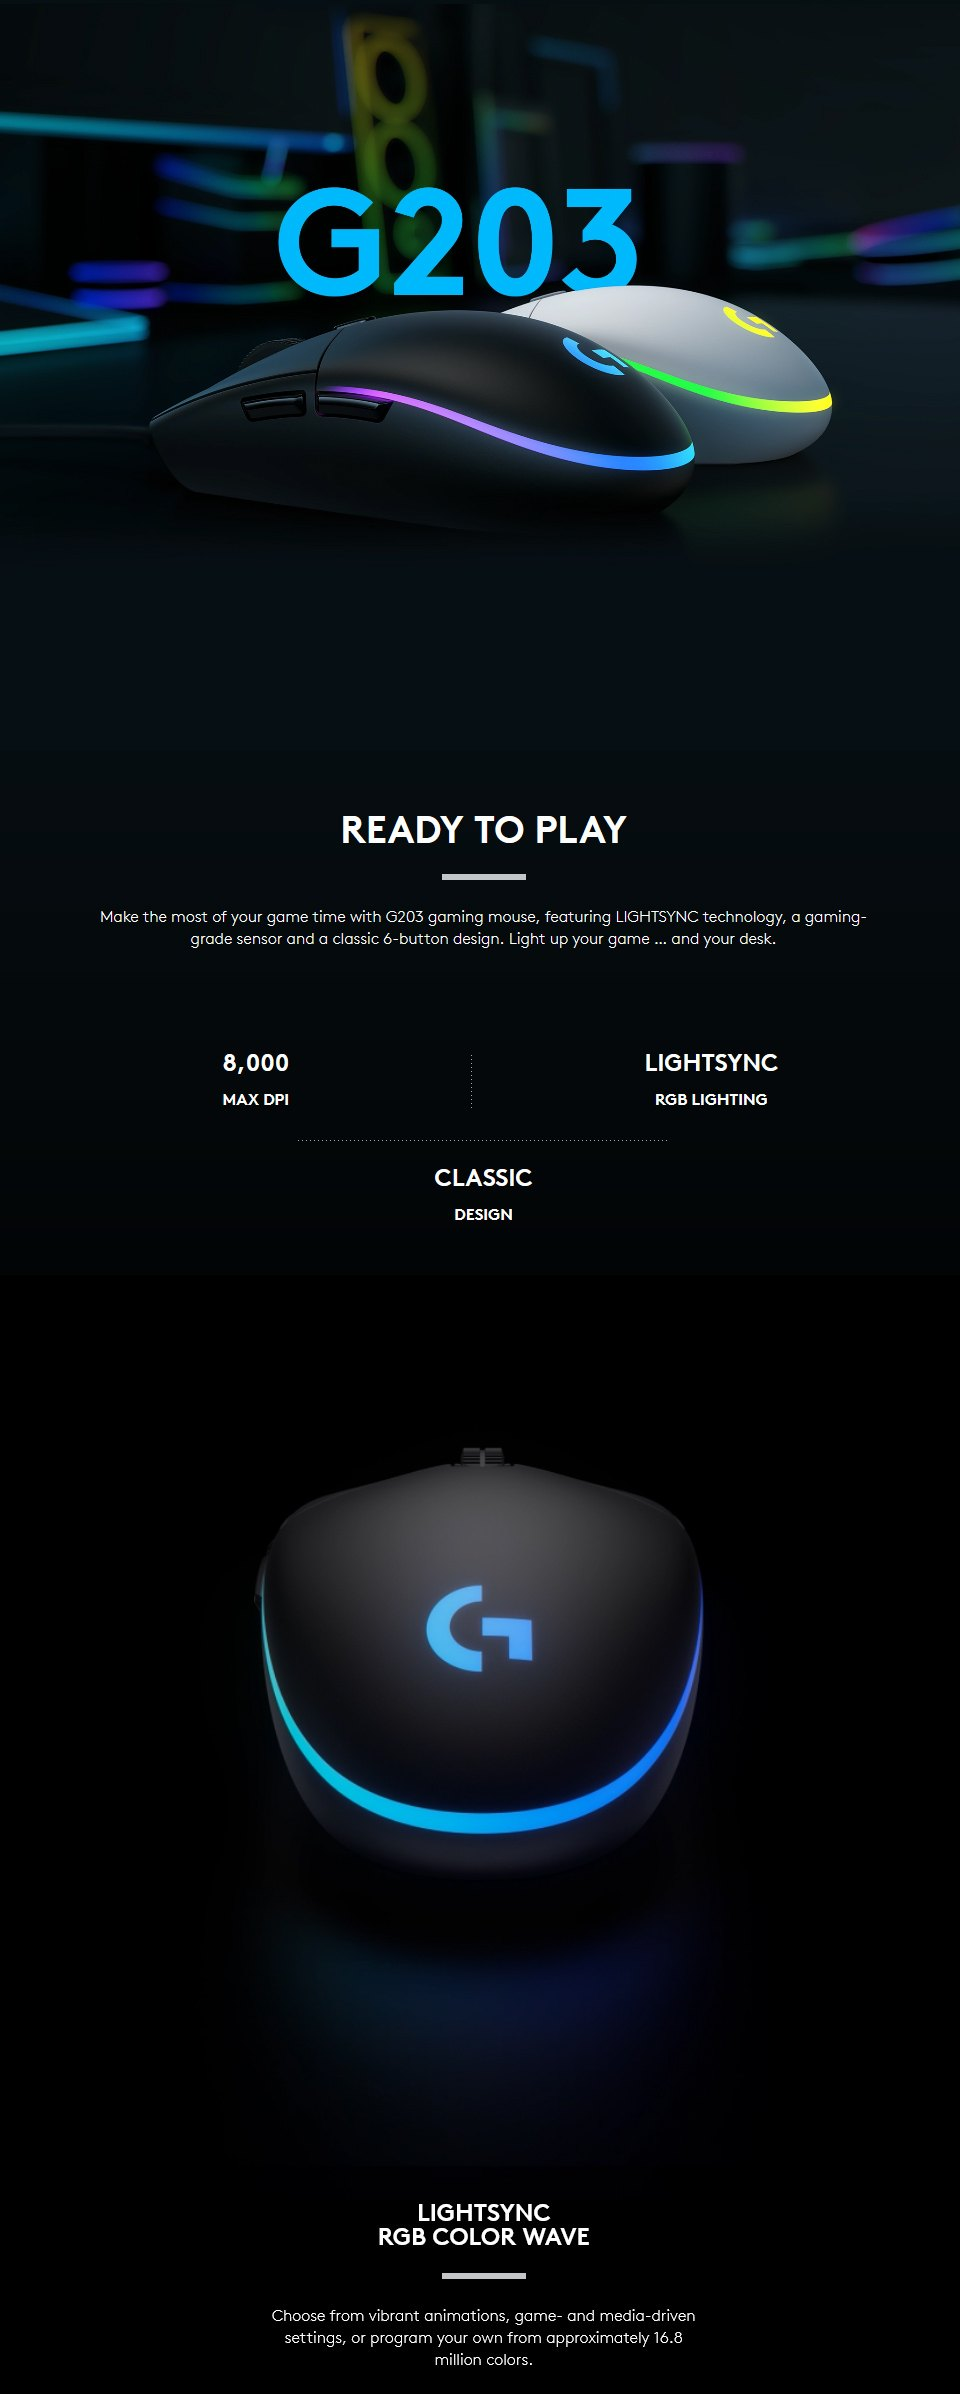 Logitech G203 Lightsync Gaming Mouse Black features